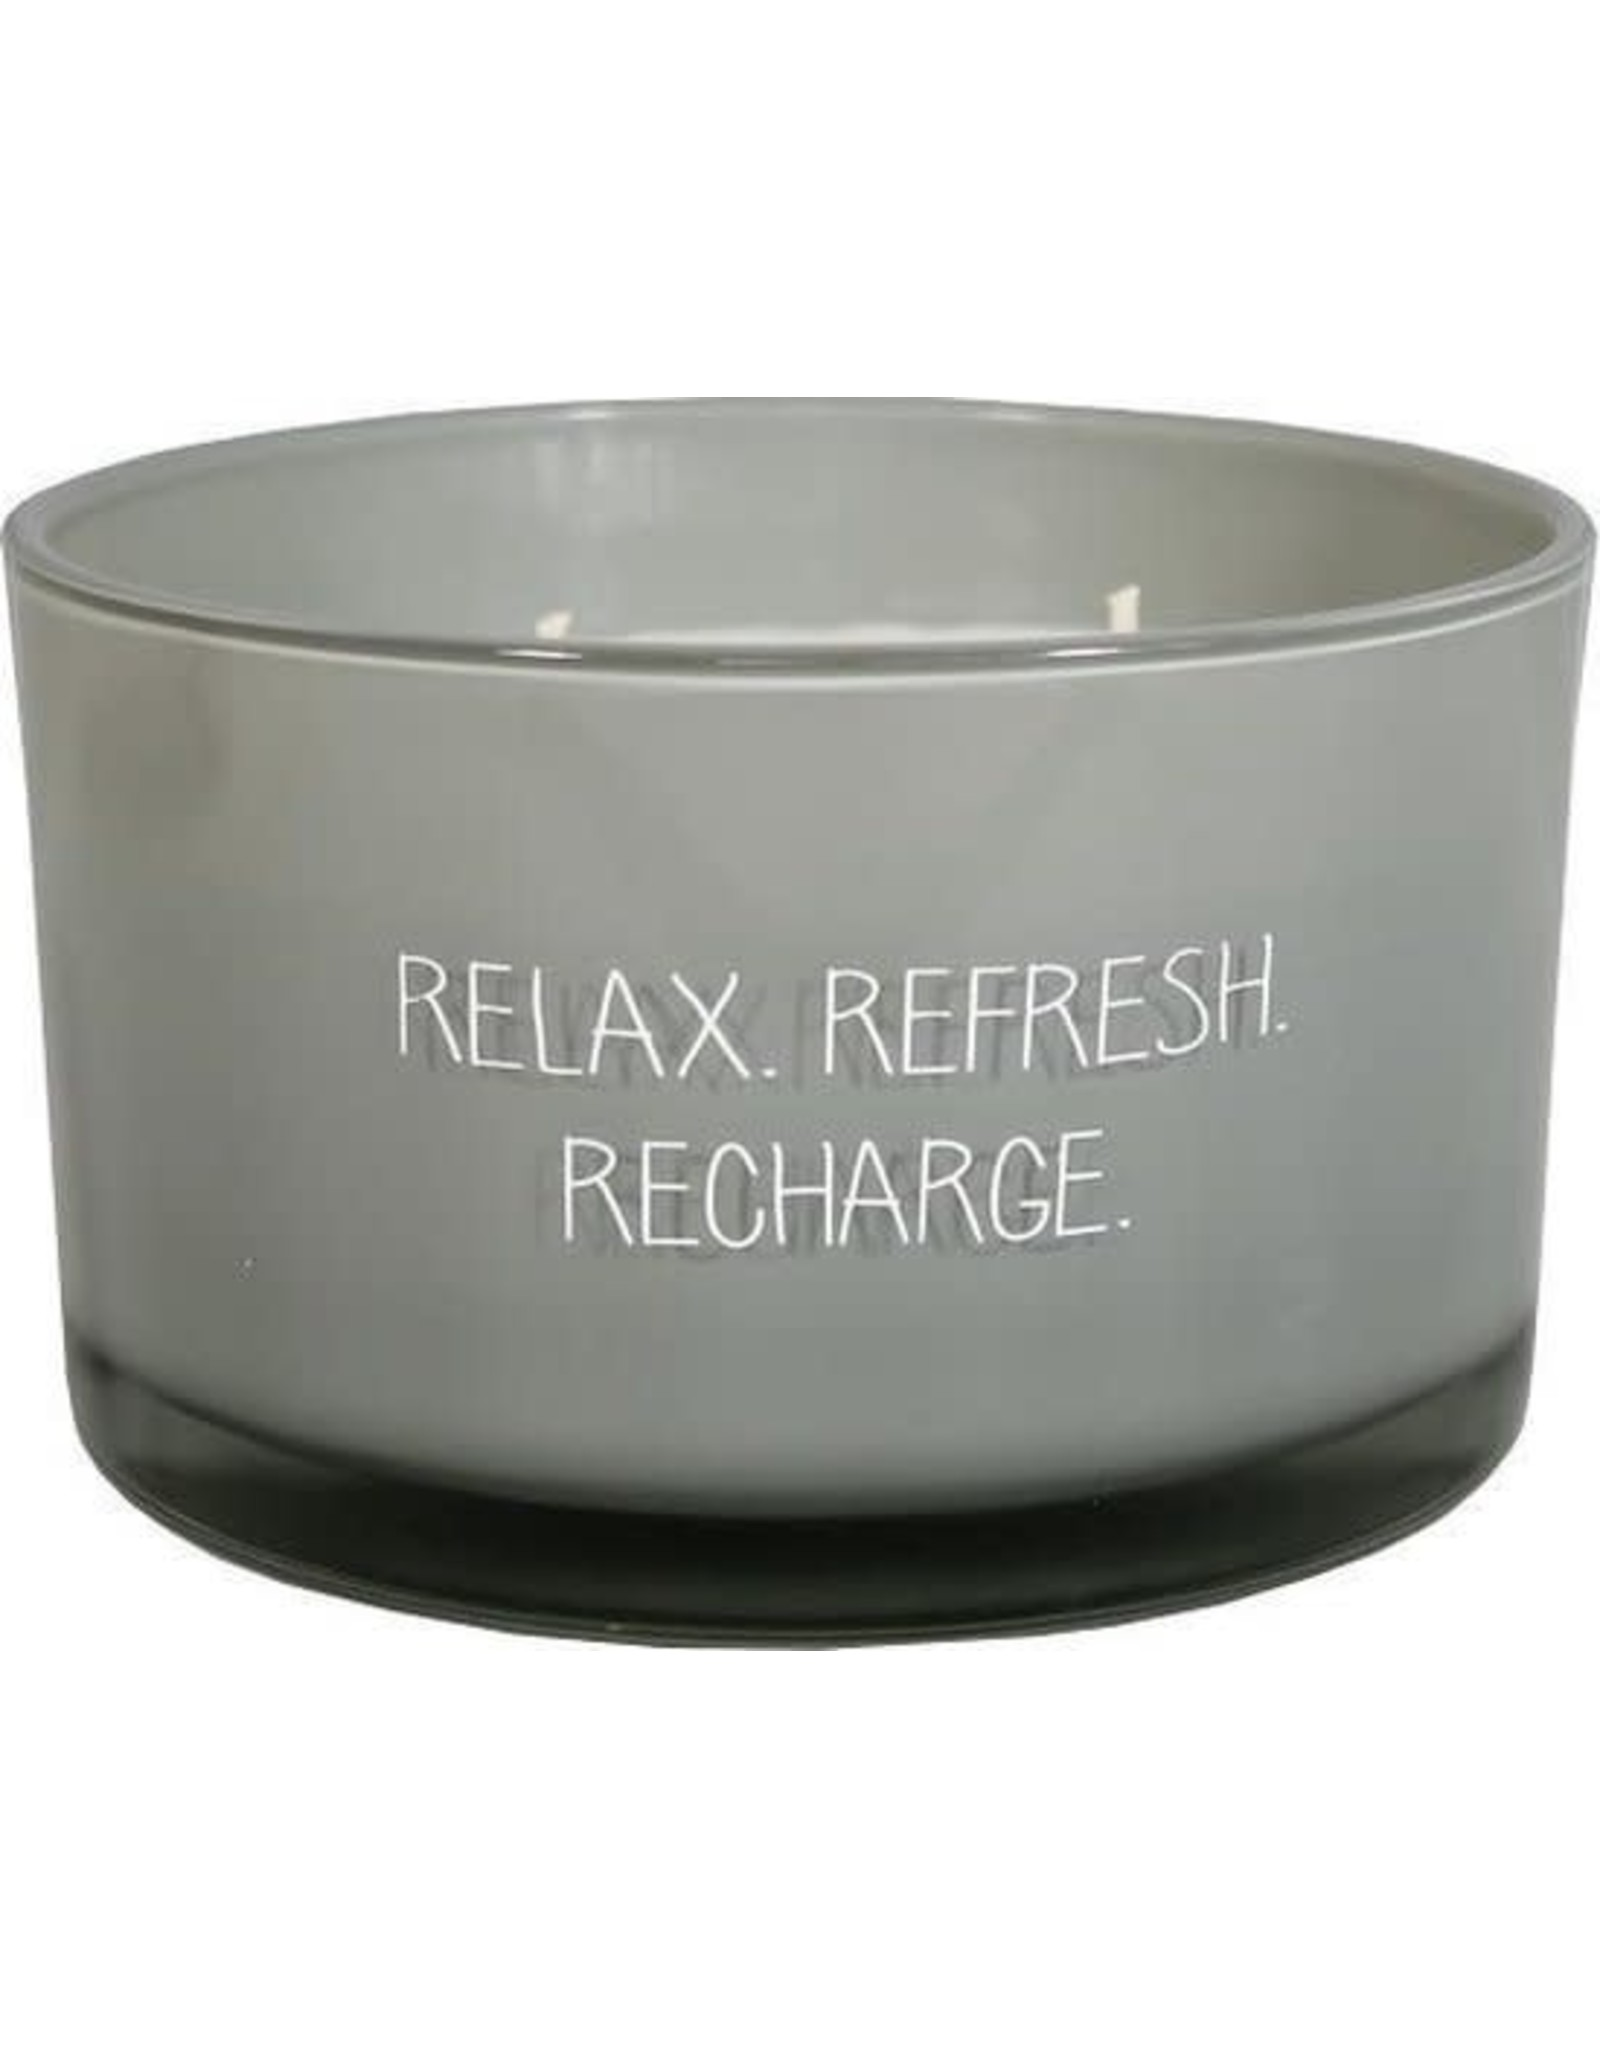 myflame SOJAKAARS - RELAX REFRESH RECHARGE - GEUR: MINTY BAMBOO